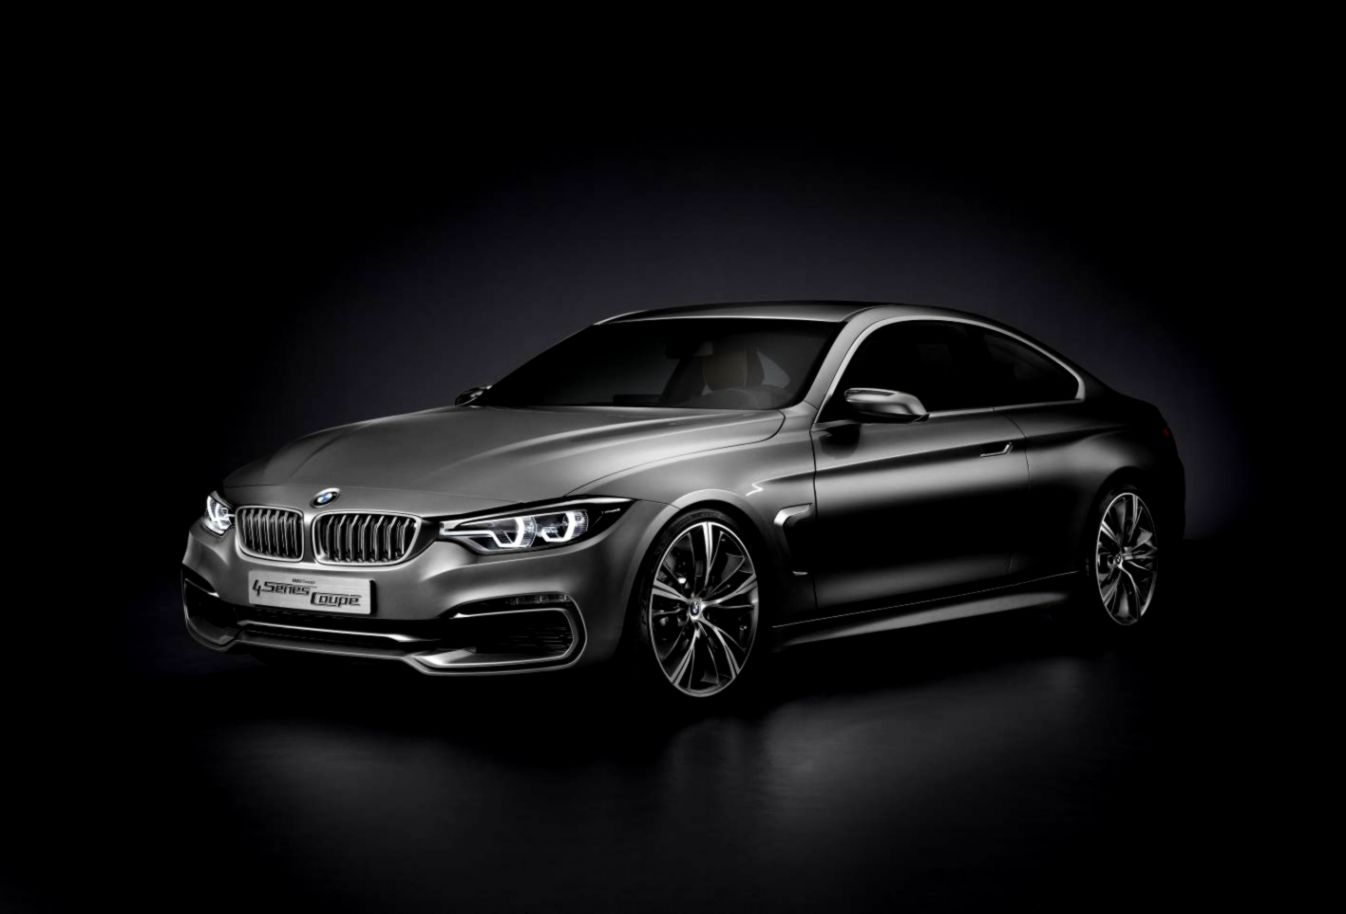 Bmw Serie 4 Coupe Design Wallpaper Hd Free HD Wallpapers